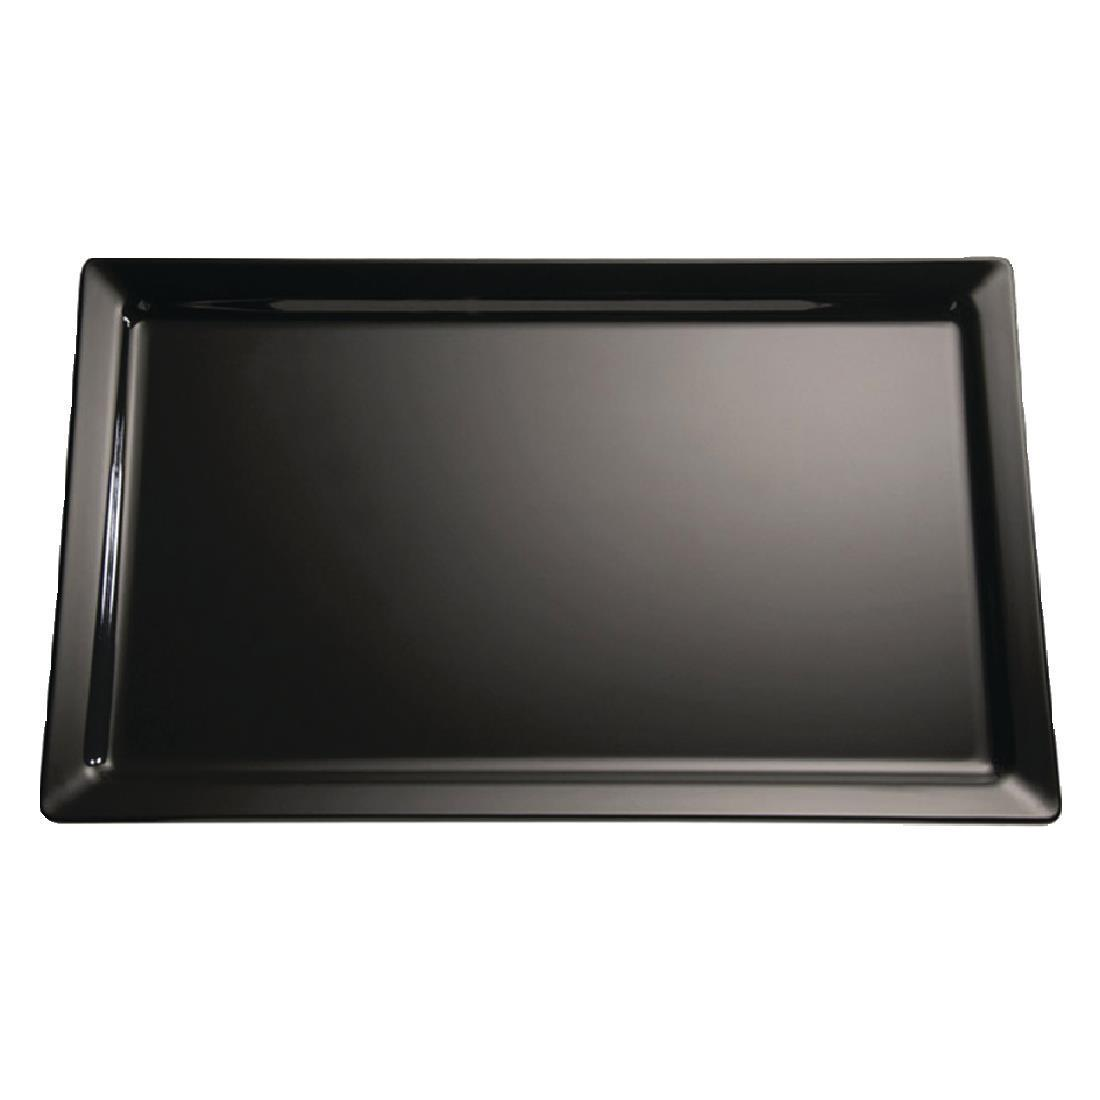 APS Pure Melamine Tray Black GN 1/2 - Each - GF123